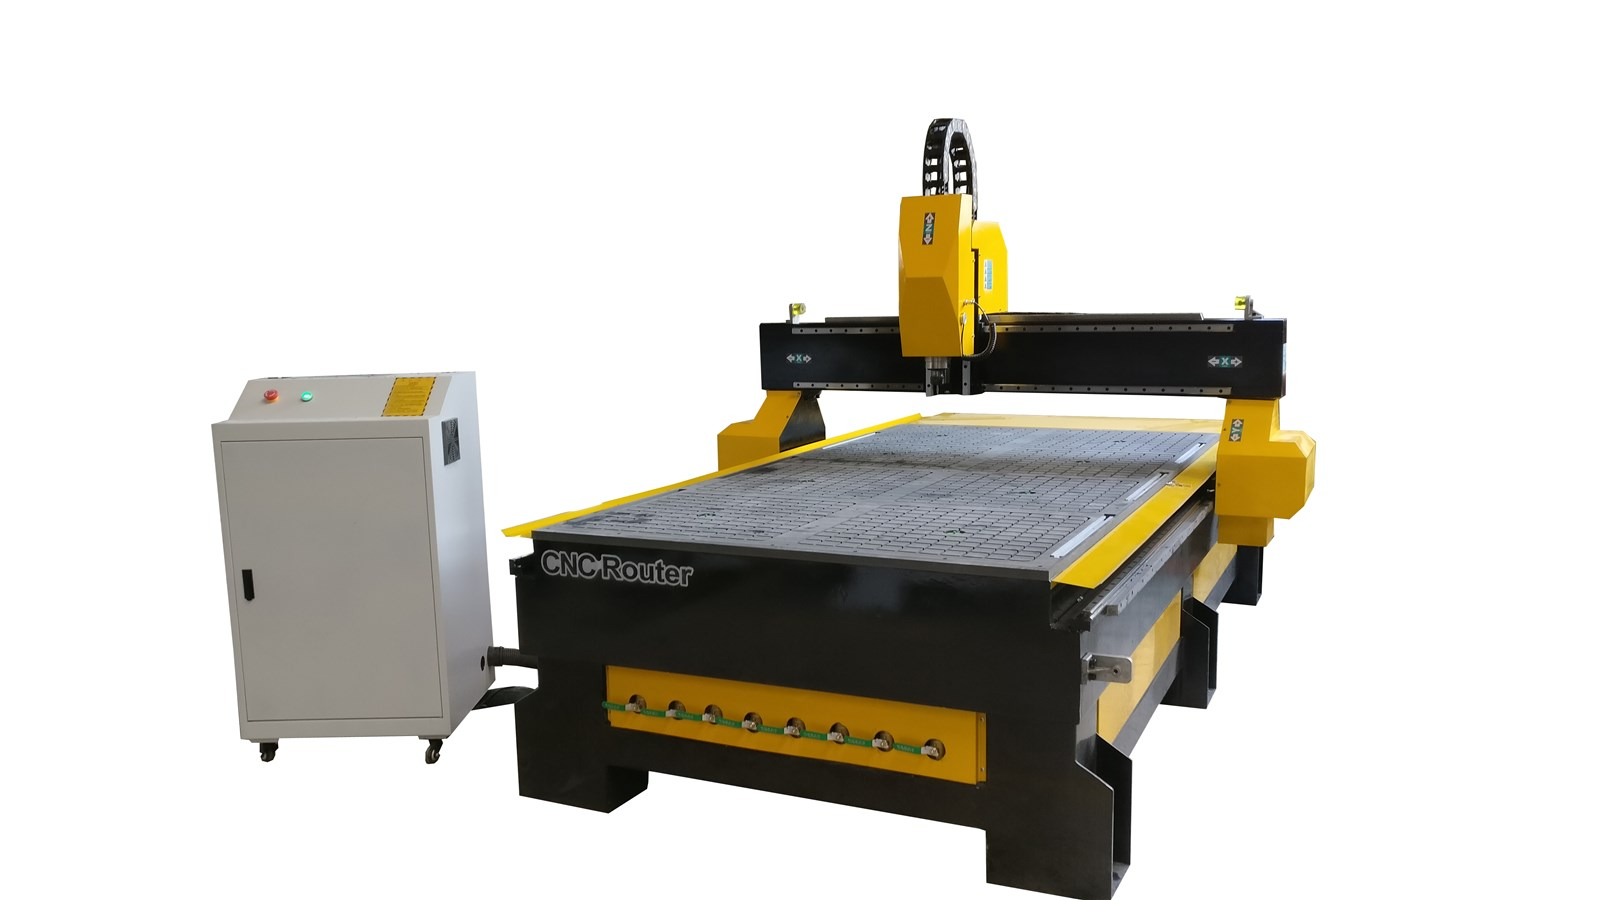 Gauss CNC Router 1325 Machine for Woodworking